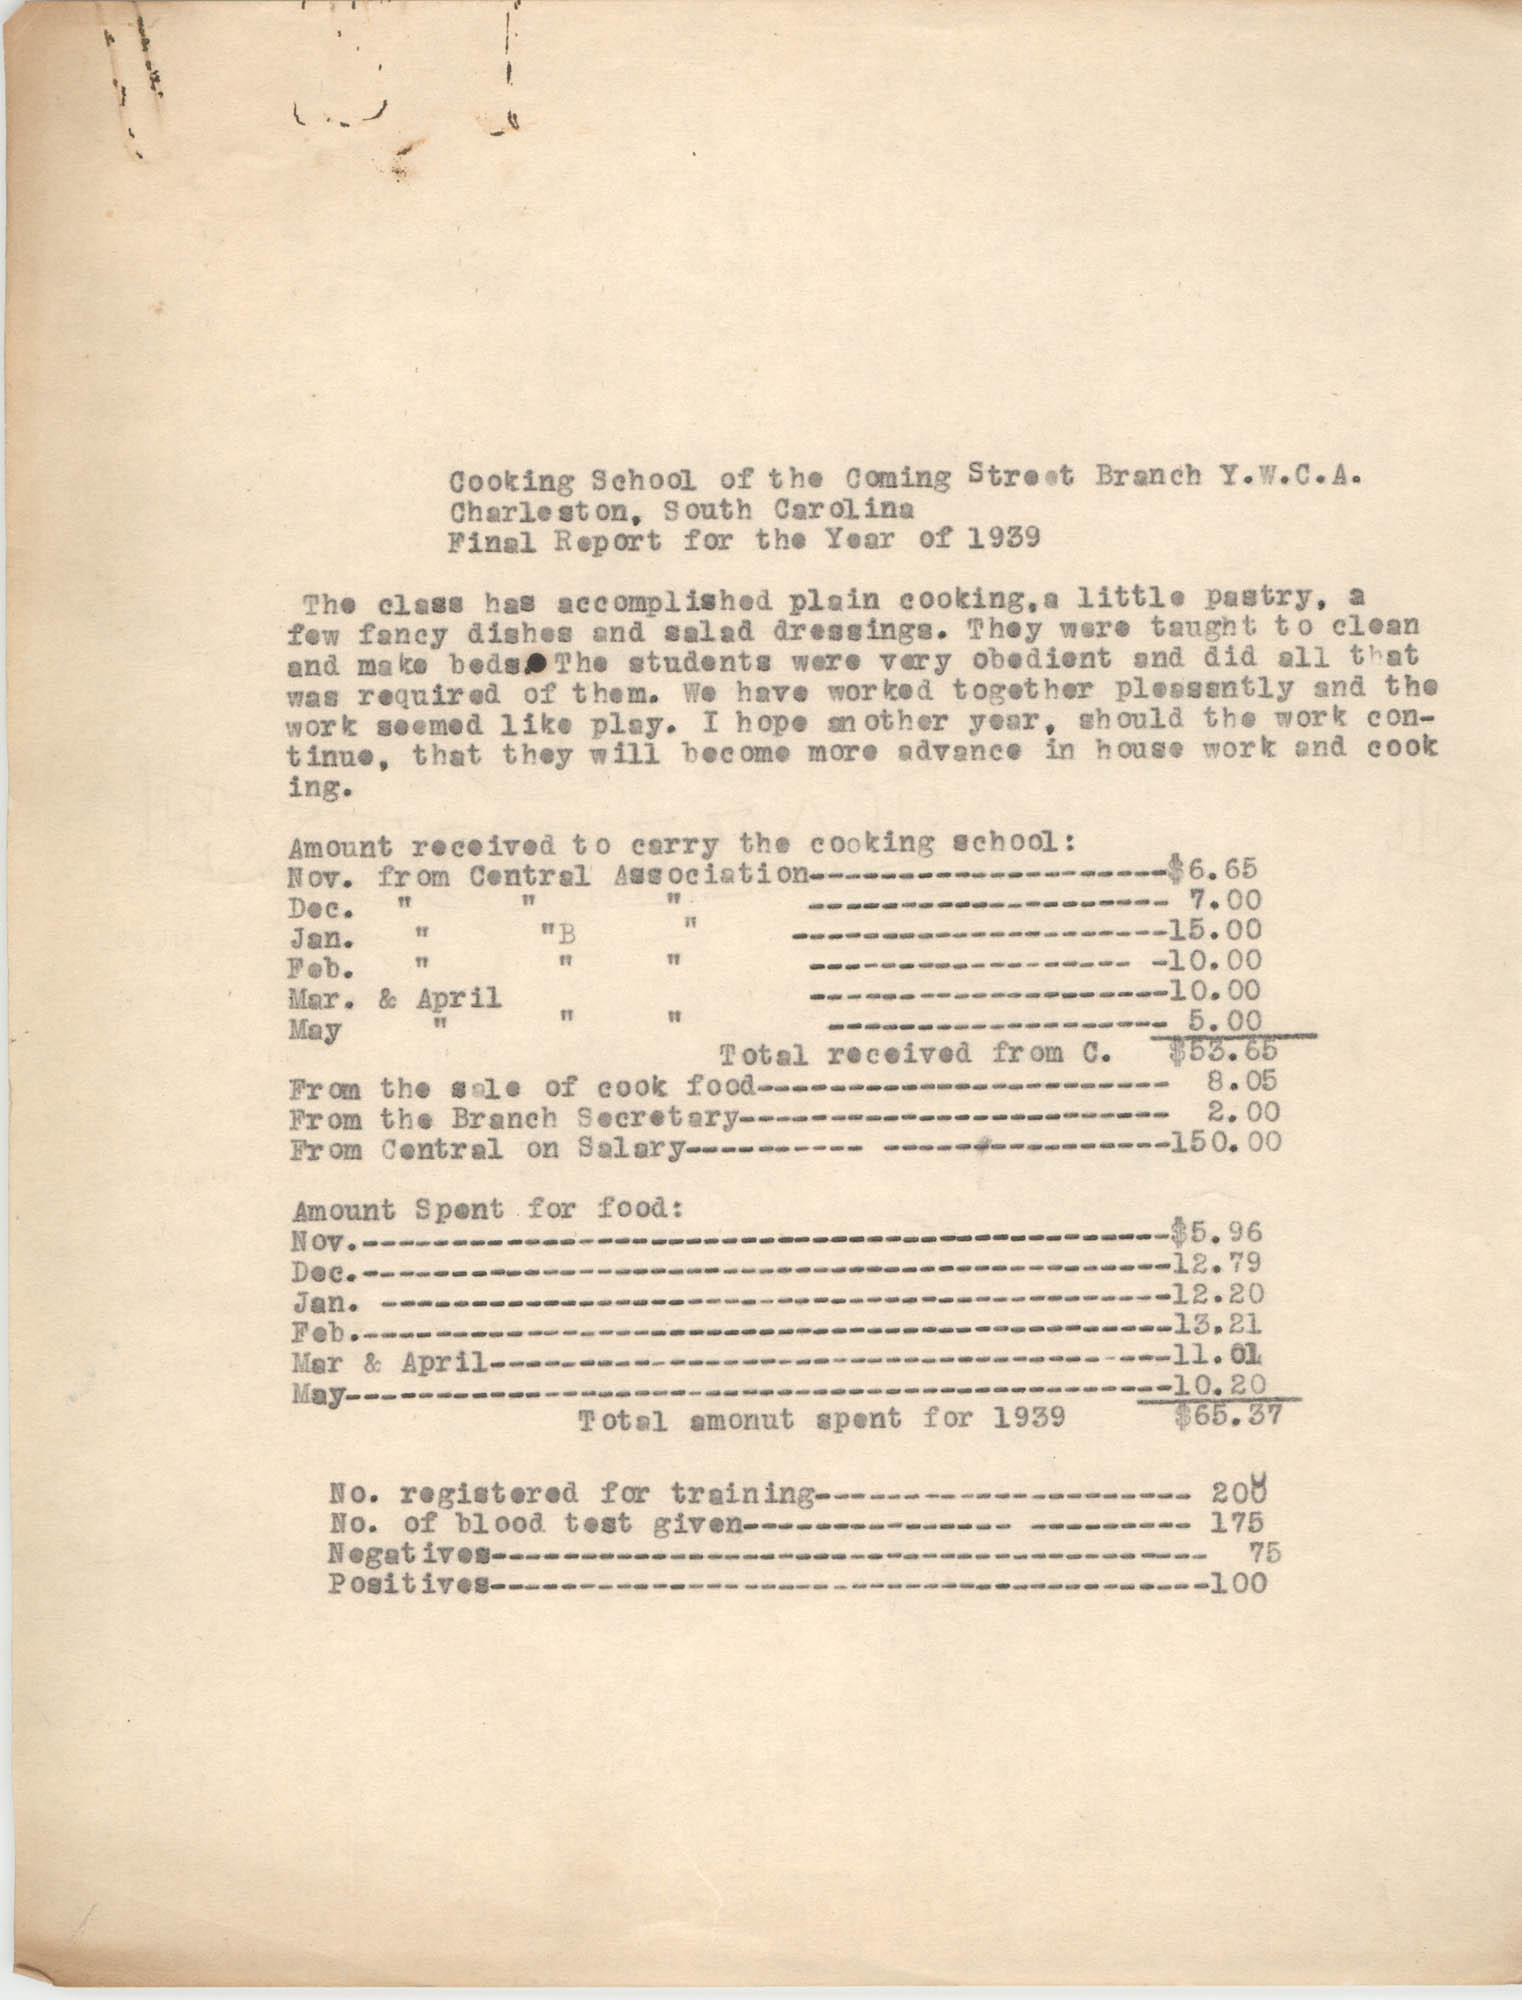 Coming Street Y.W.C.A. Annual Report for 1939